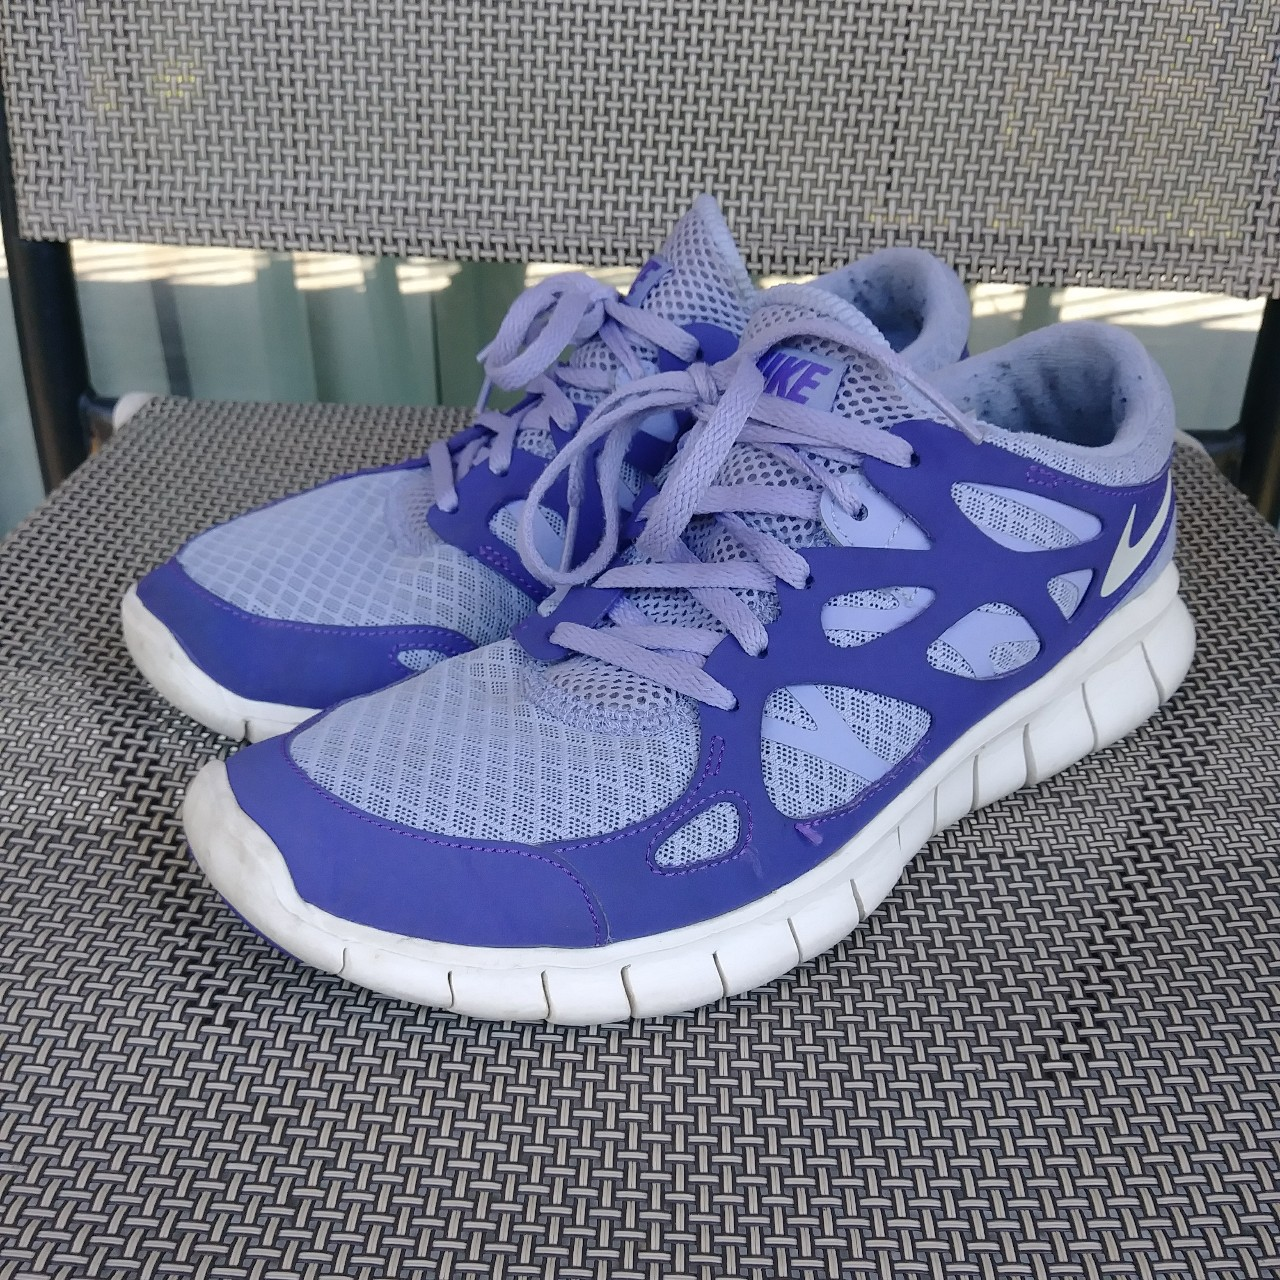 sports shoes 25f7a 8c727 Cute purple Nike free run 2 shoes! They are worn on... - Depop